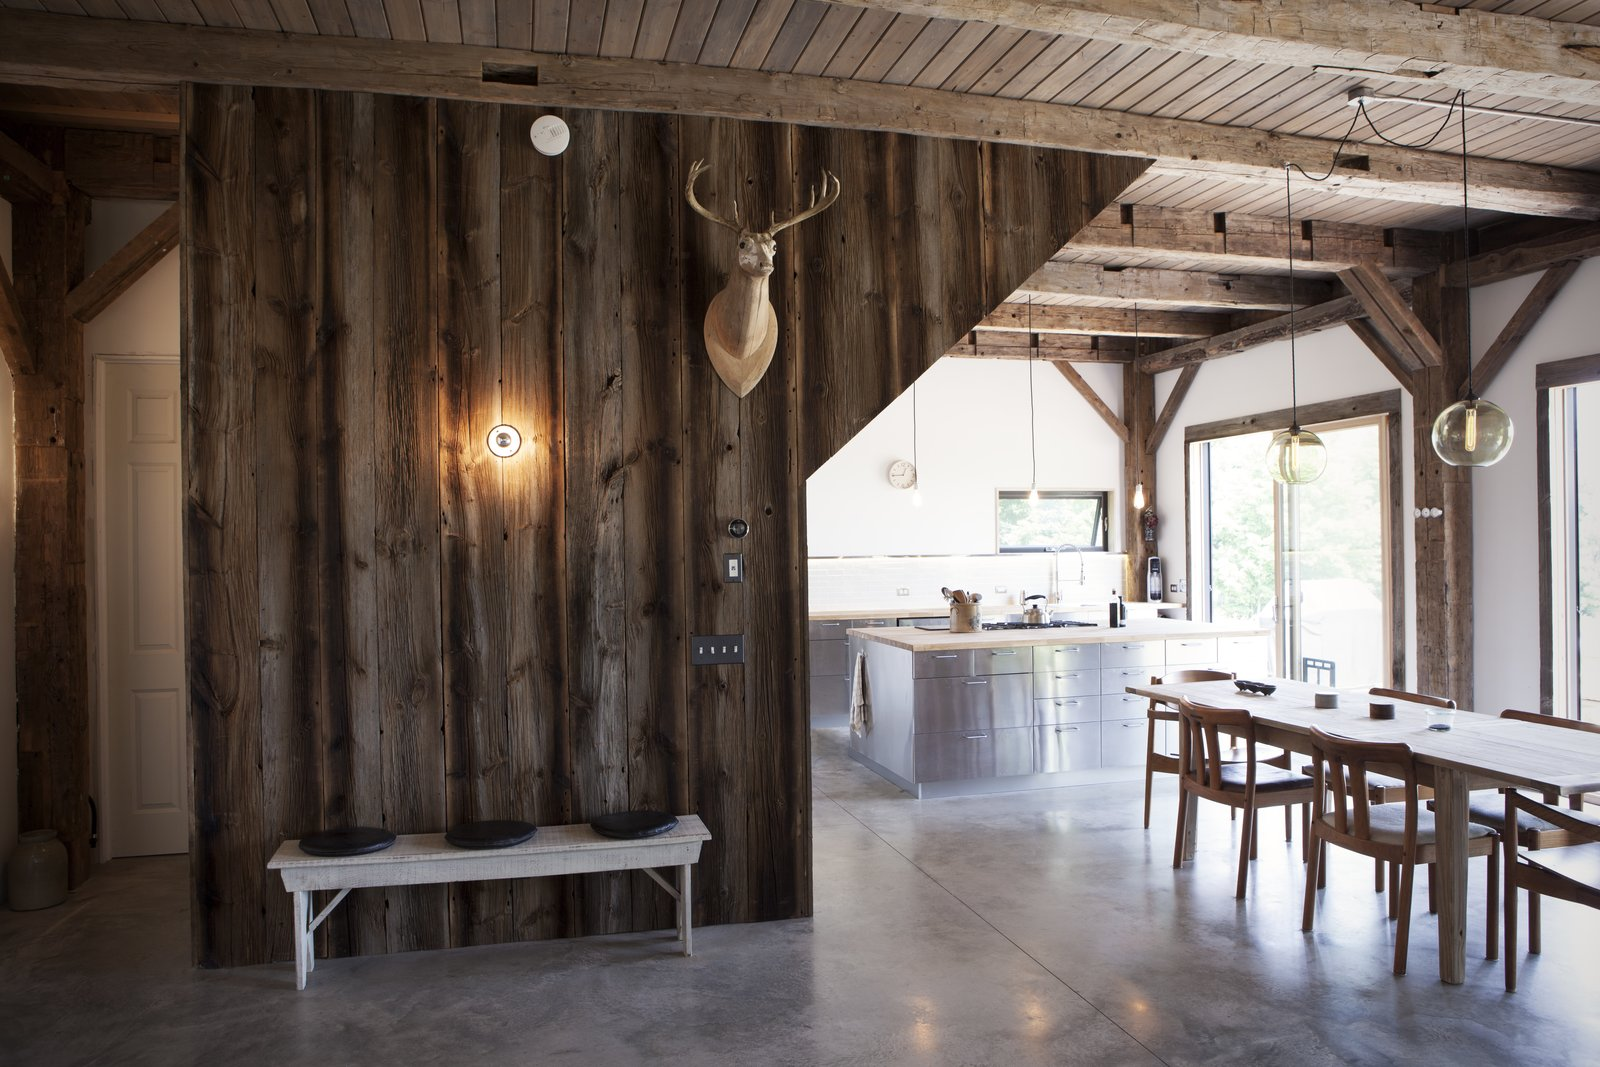 """Kitchen, Metal Cabinet, Concrete Floor, Pendant Lighting, and Wall Lighting The cabin's basic structure was reclaimed from a barn built in 1840 and purchased from Heritage Barns out of Waco, Texas. The same company supplied the recycled wood that clads the walls, though the ceiling boards are new. """"We stained them with a gray wash to match the tones of the post and beam, but with a more clean look,"""" Bronee explains. The concrete floors were polished and waxed for a sleek finish.  Photo 7 of 8 in 8 Beautiful Home Projects Using Reclaimed Wood from A Slice of Scandinavian Design in the Catskills"""